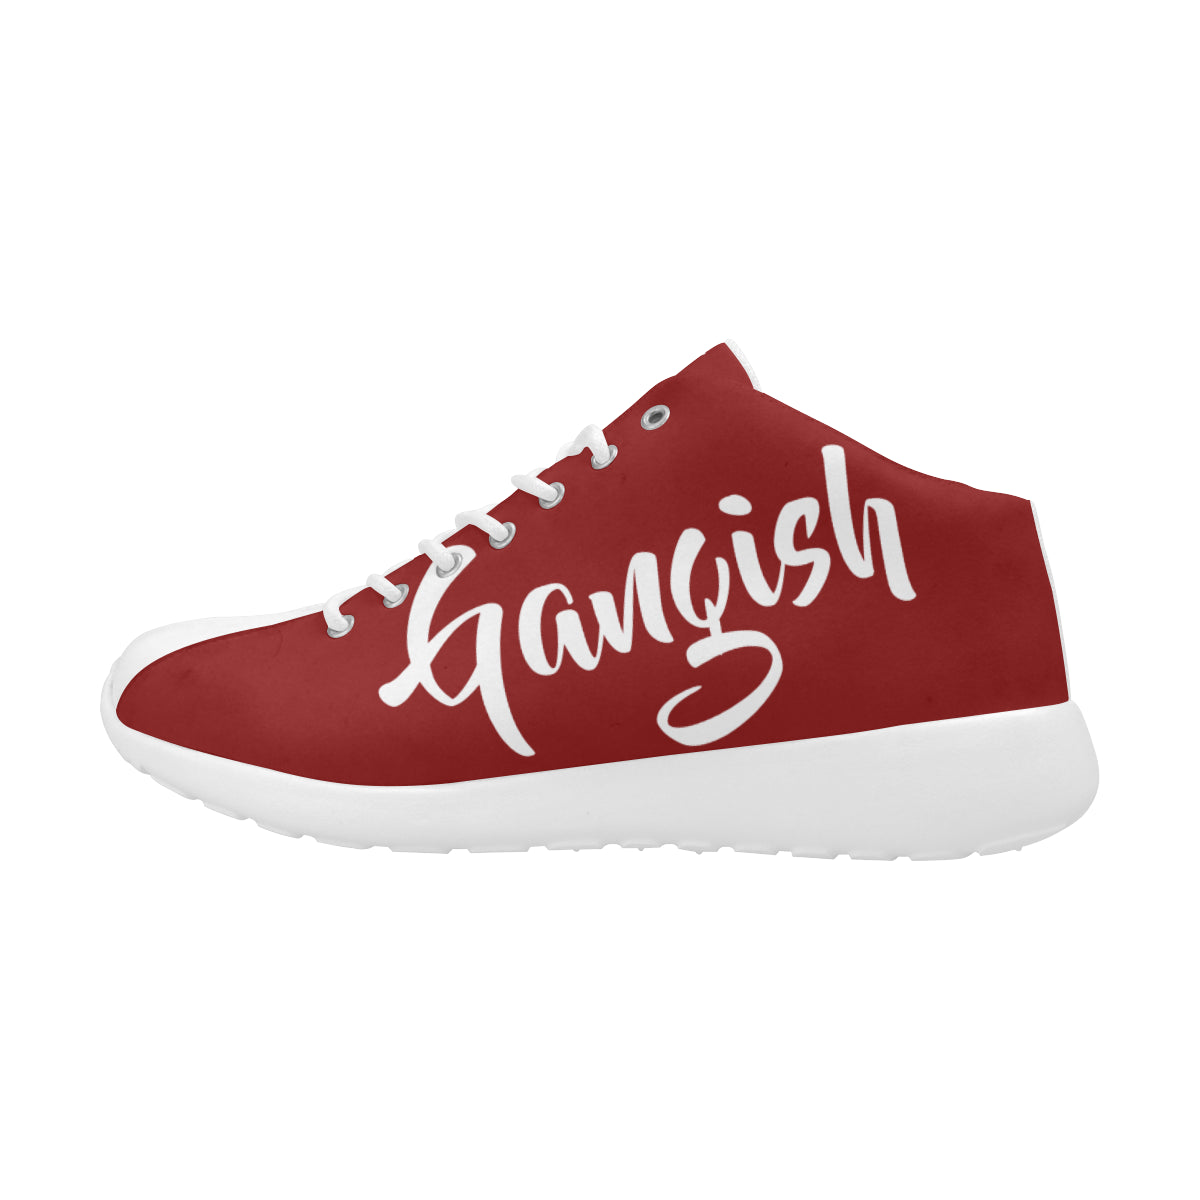 Gangish Women's Basketball Training Shoes/Large Size